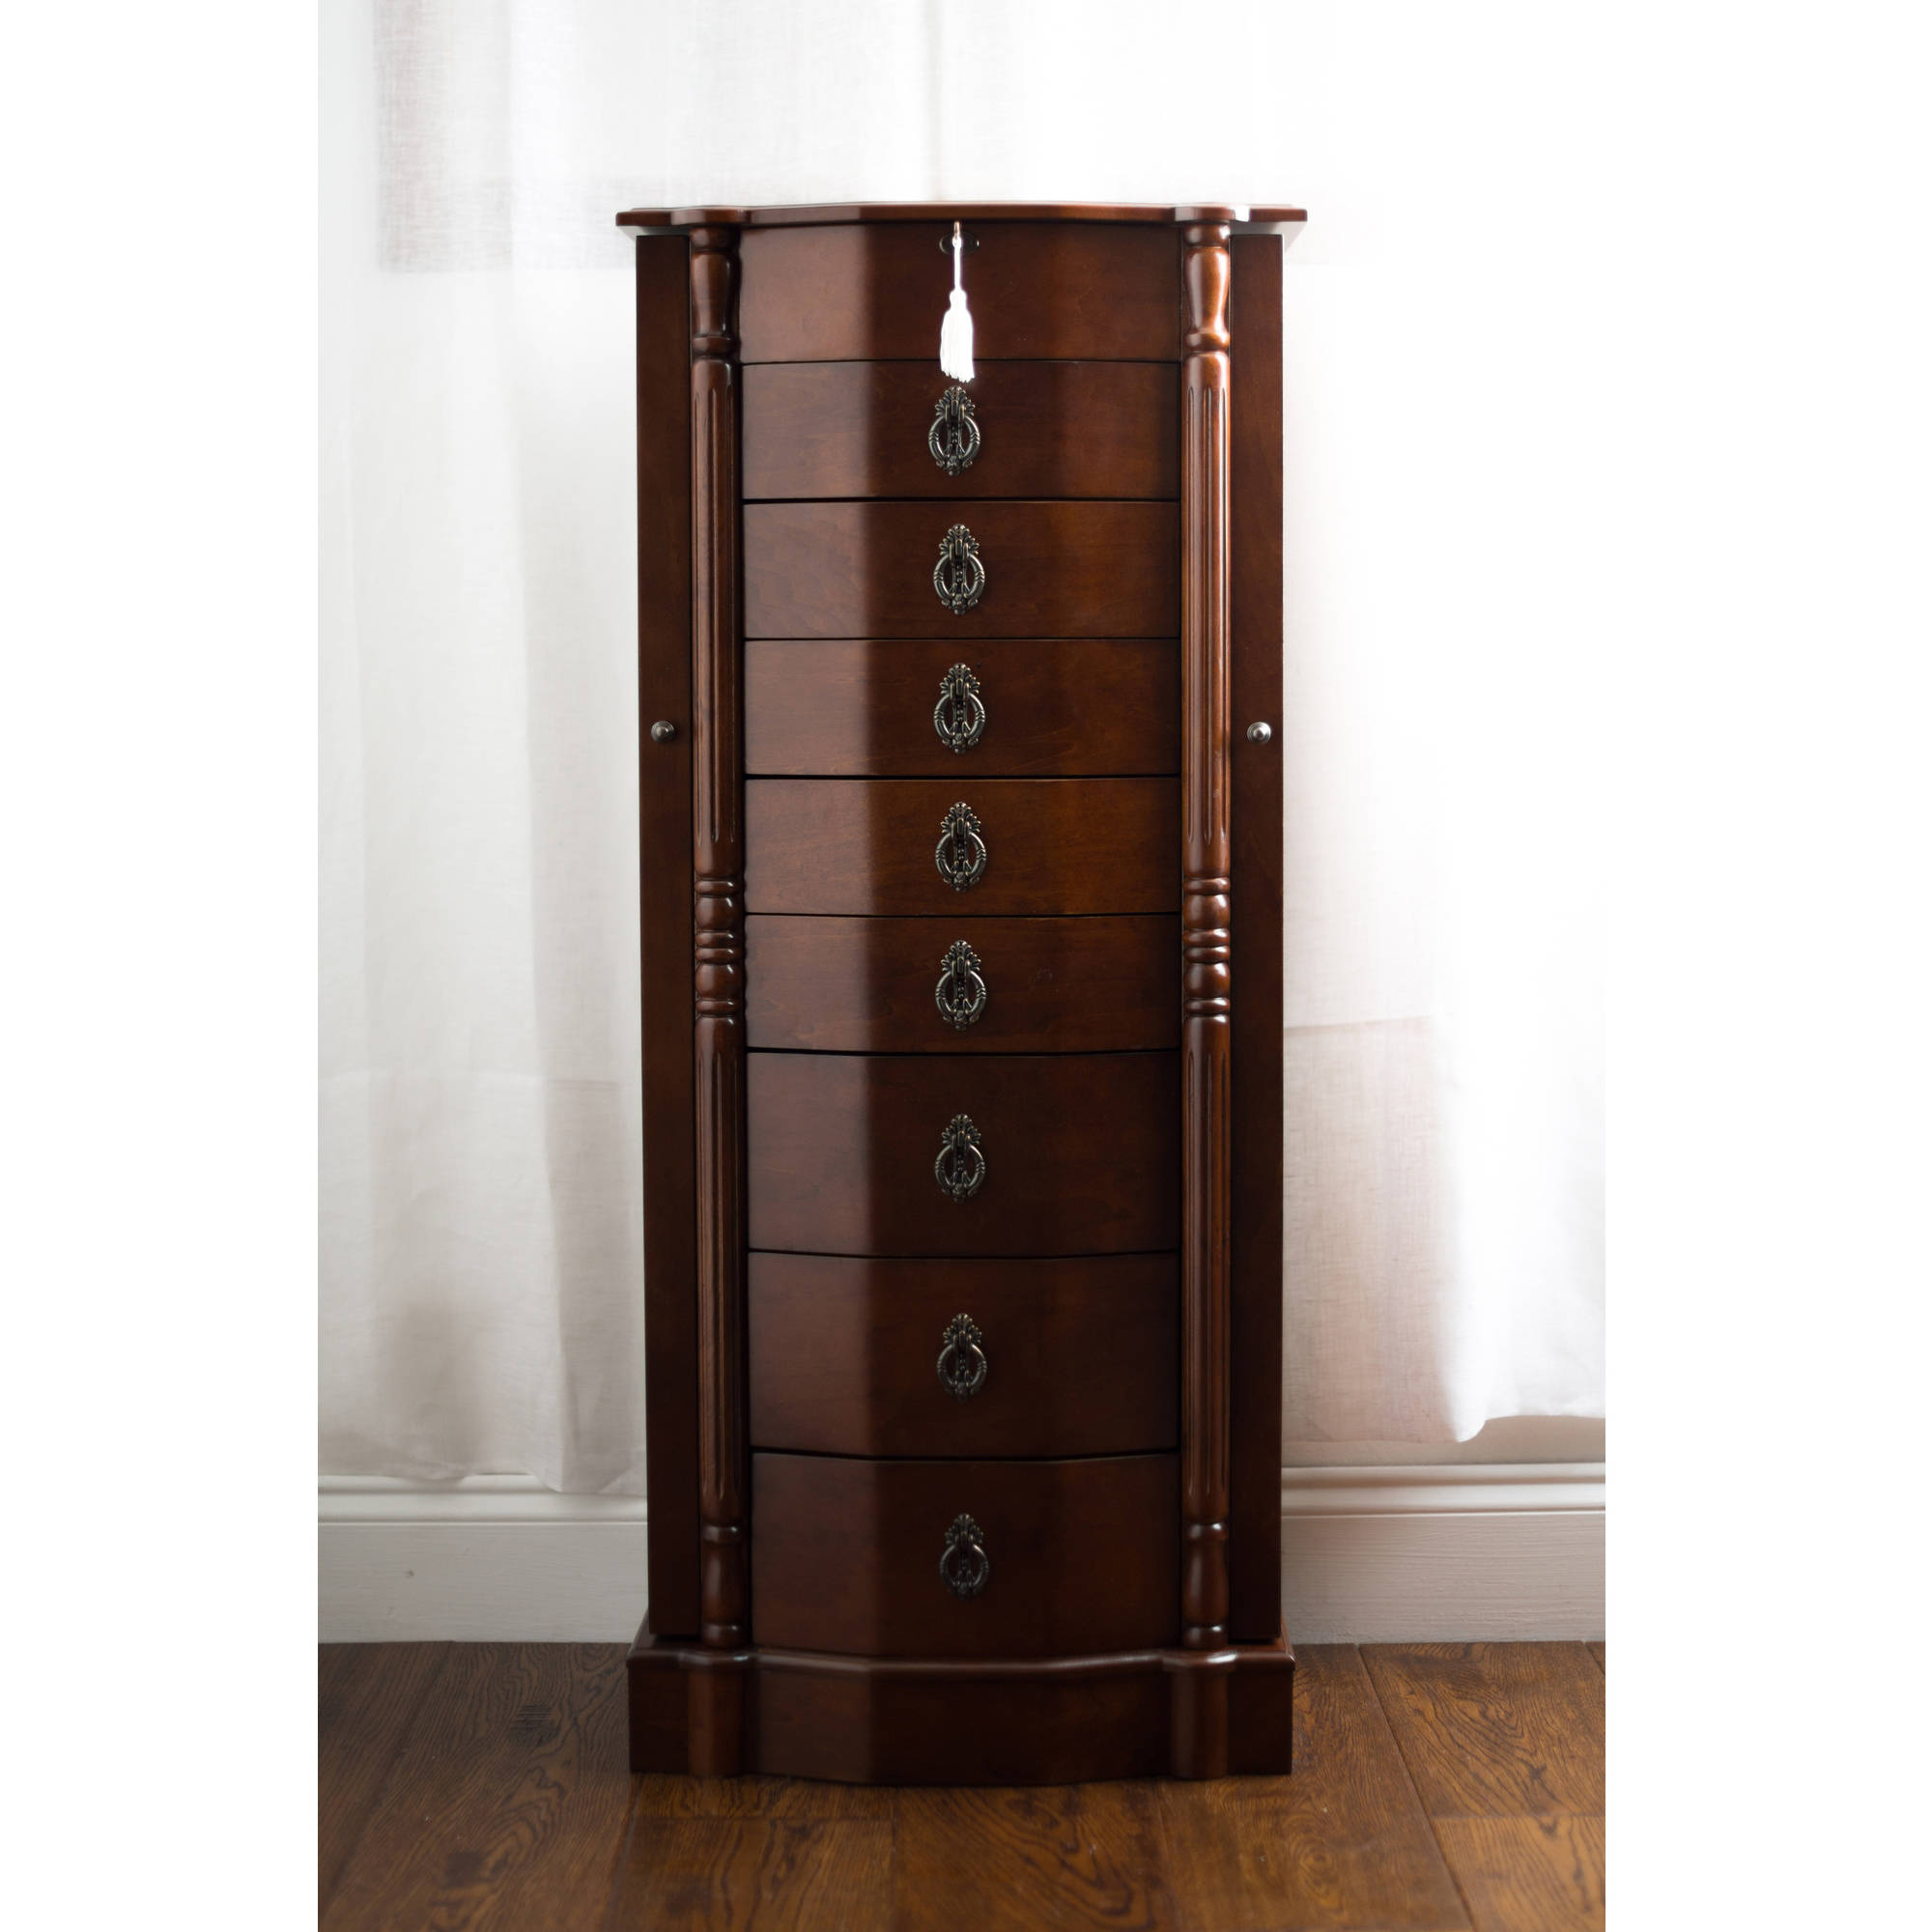 Hives & Honey Robyn Standing Jewelry Armoire - Walnut